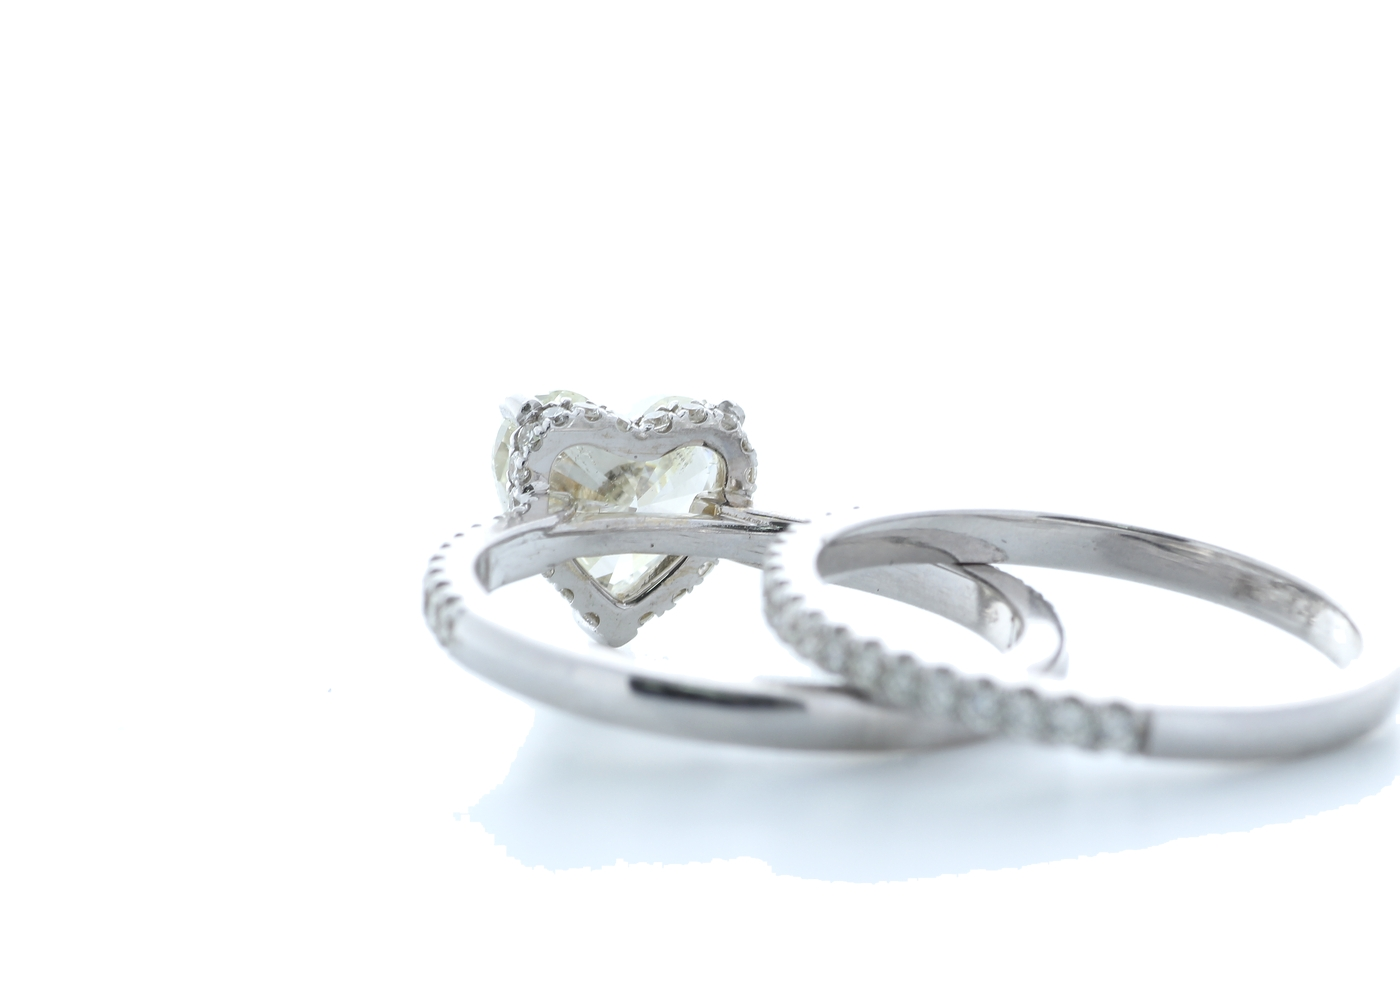 18k White Gold Heart Shape Diamond Ring With Matching Band 2.22 (1.60) Carats - Image 3 of 5